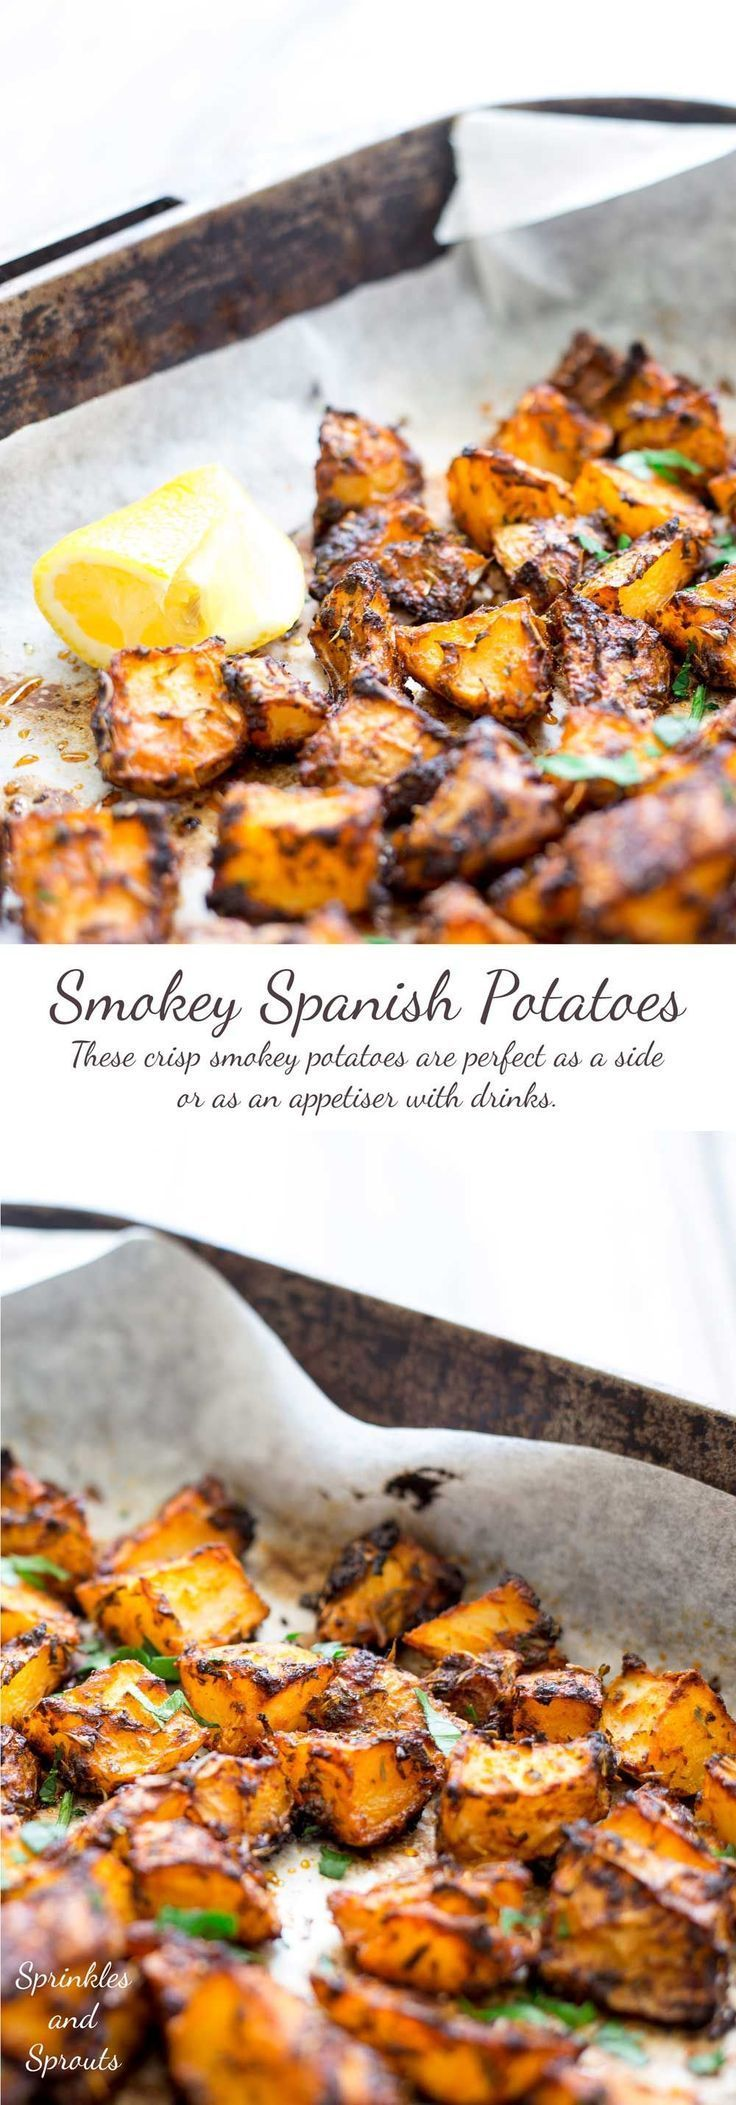 Crisp, smokey, with a touch of citrus, these Spanish potatoes are a great side dish or as an appetiser with drinks. As you spear your fork into the crisp shell you can just imagine sitting watching the sun set as you enjoy a cold beer inSan Sebastián